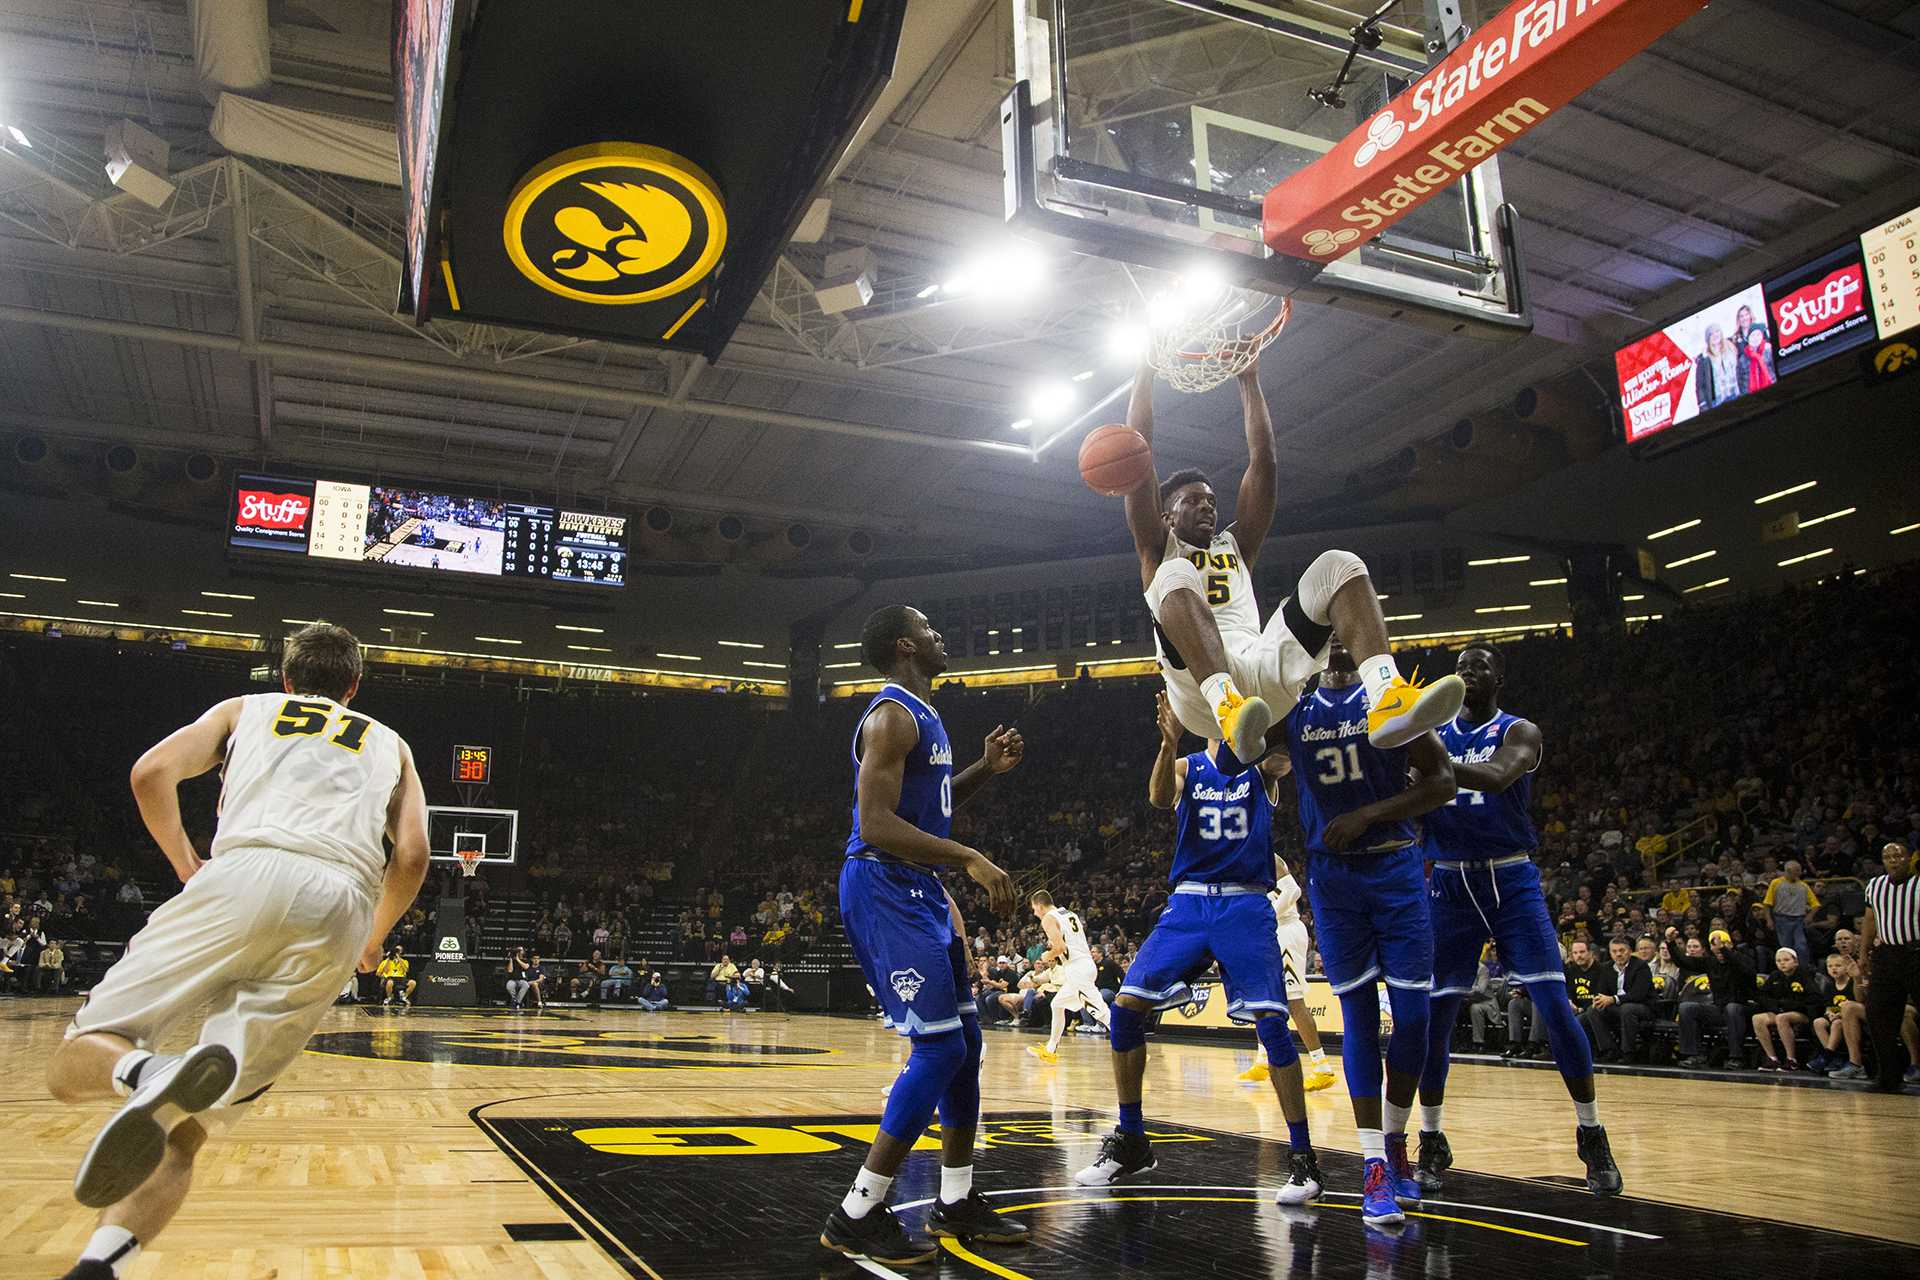 Iowa forward Tyler Cook hangs from the rim after dunking in Carver-Hawkeye on Thursday, Nov. 17, 2016. Cook averaged 12.3 points per game last season, second on the team behind Peter Jok. (Joseph Cress/The Daily Iowan)